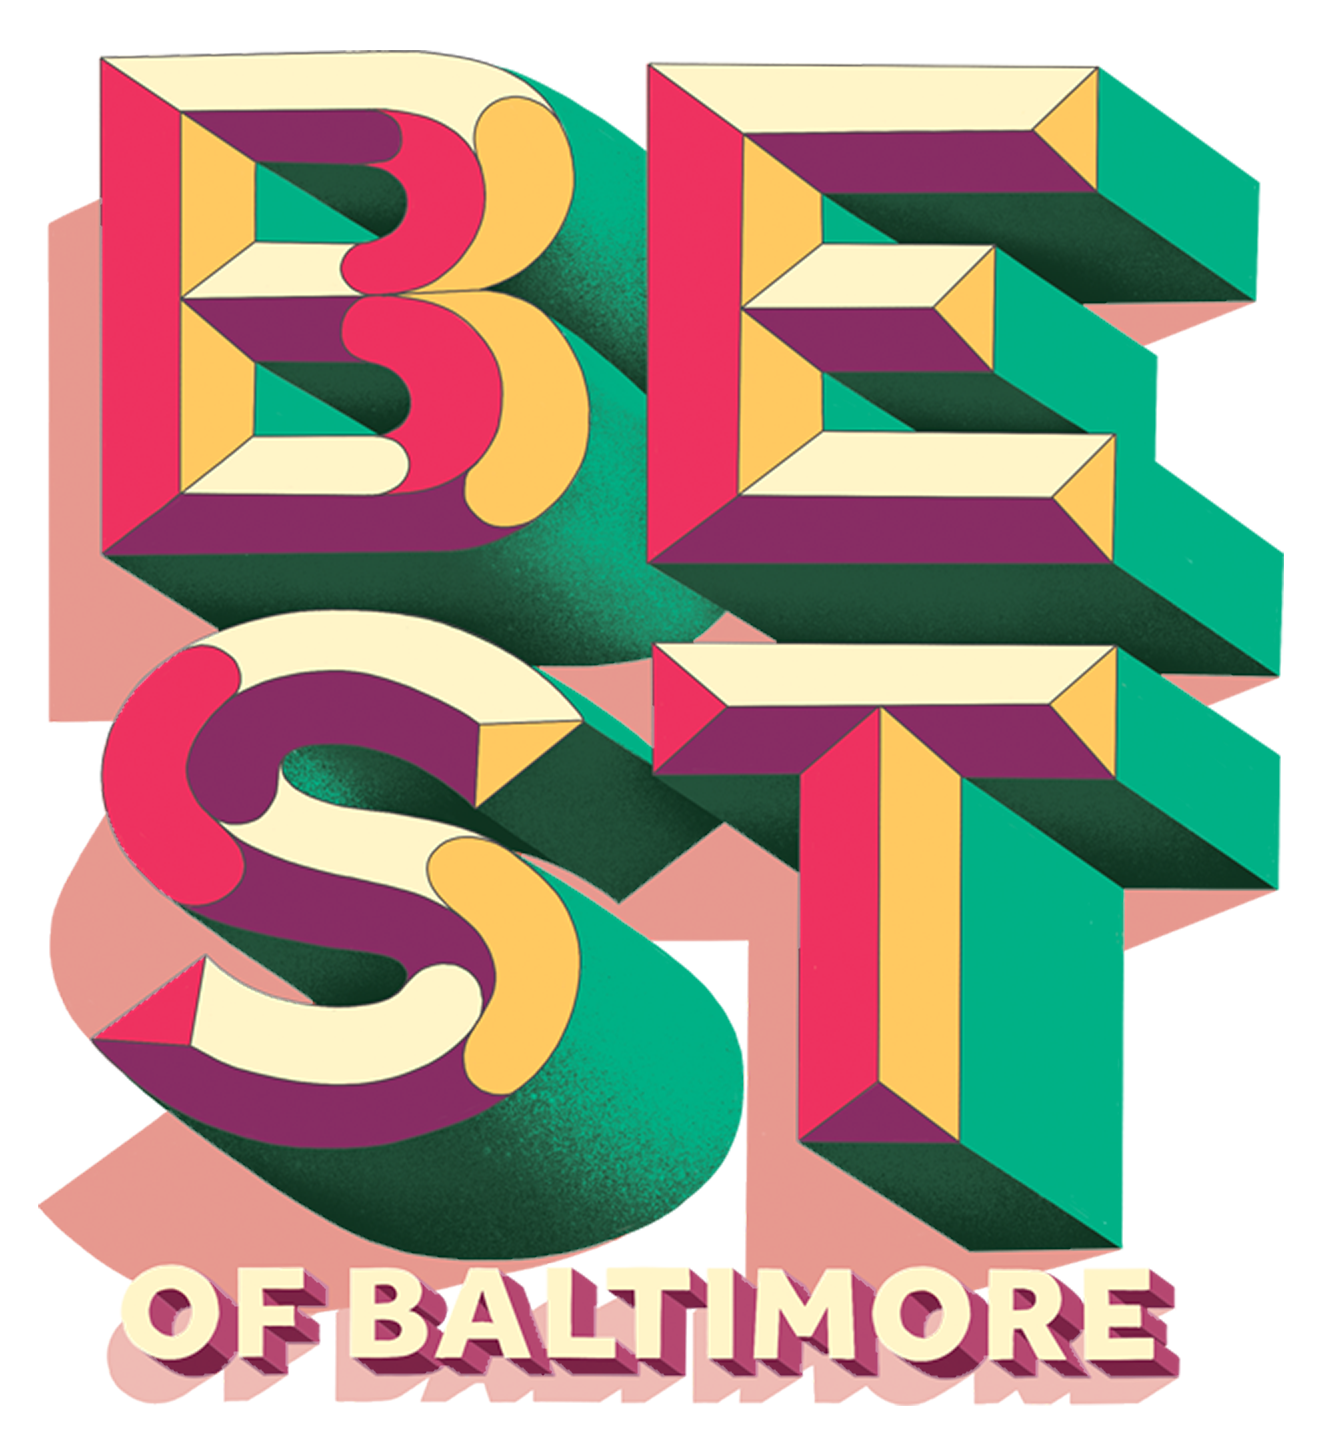 Best Of Baltimore 2018 Baltimore Magazine